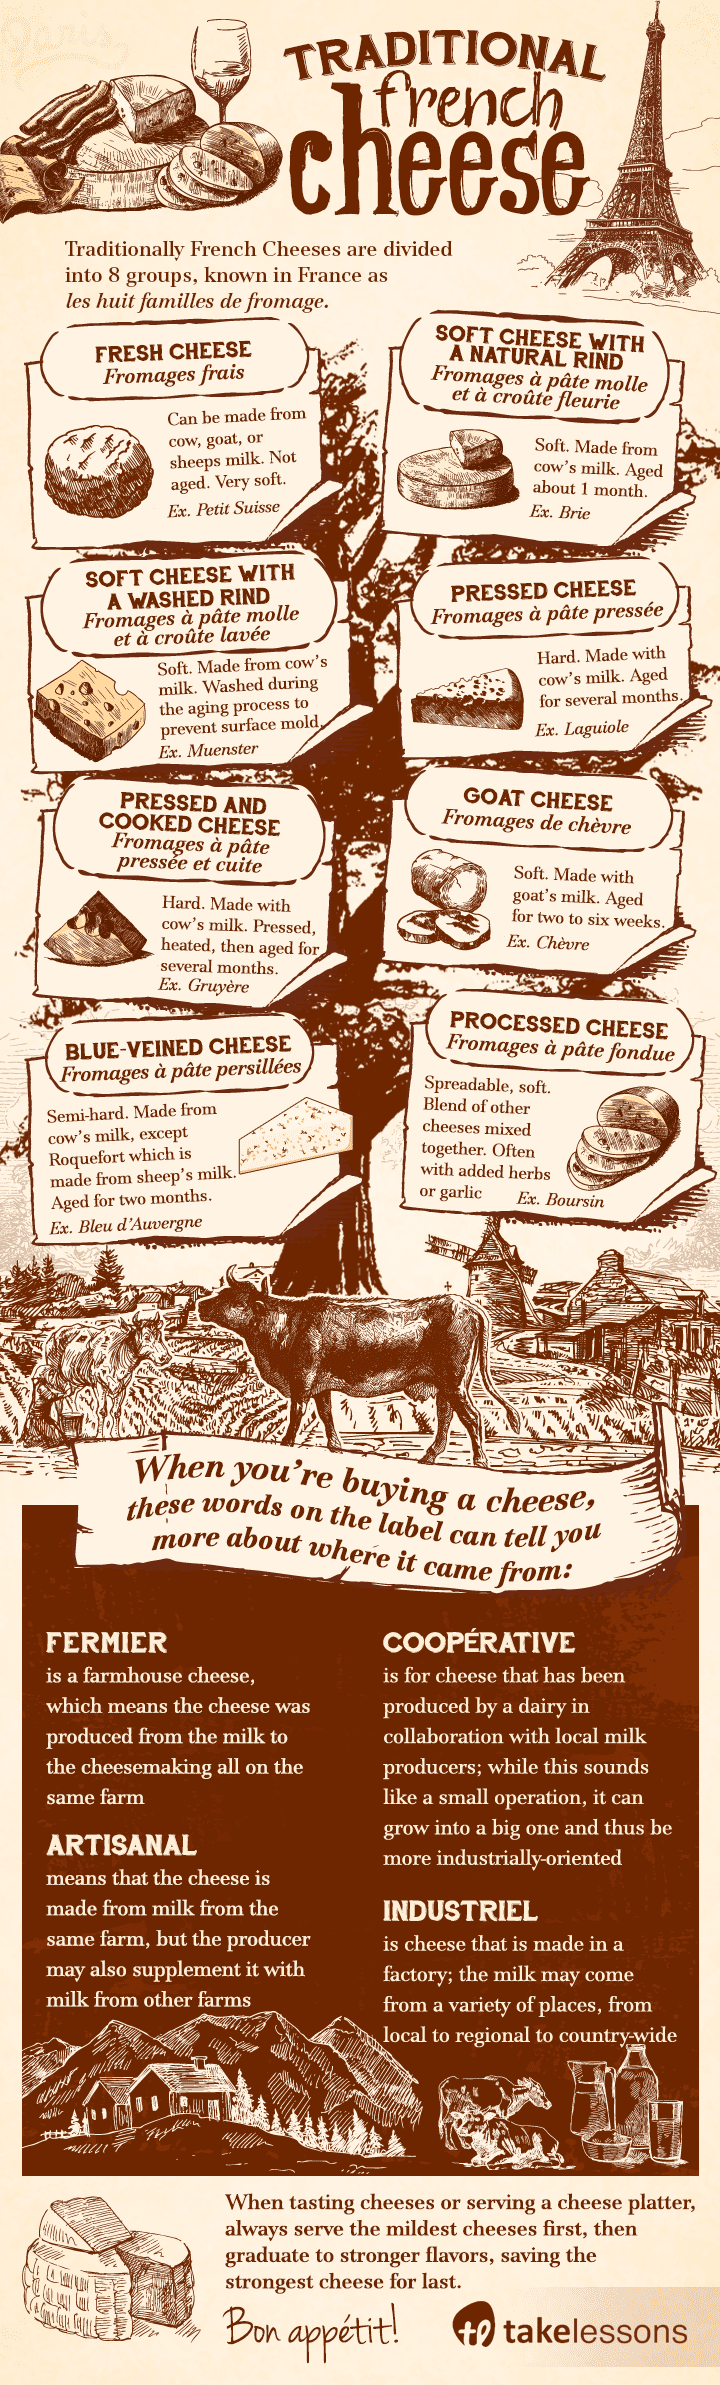 traditional French cheese infographic